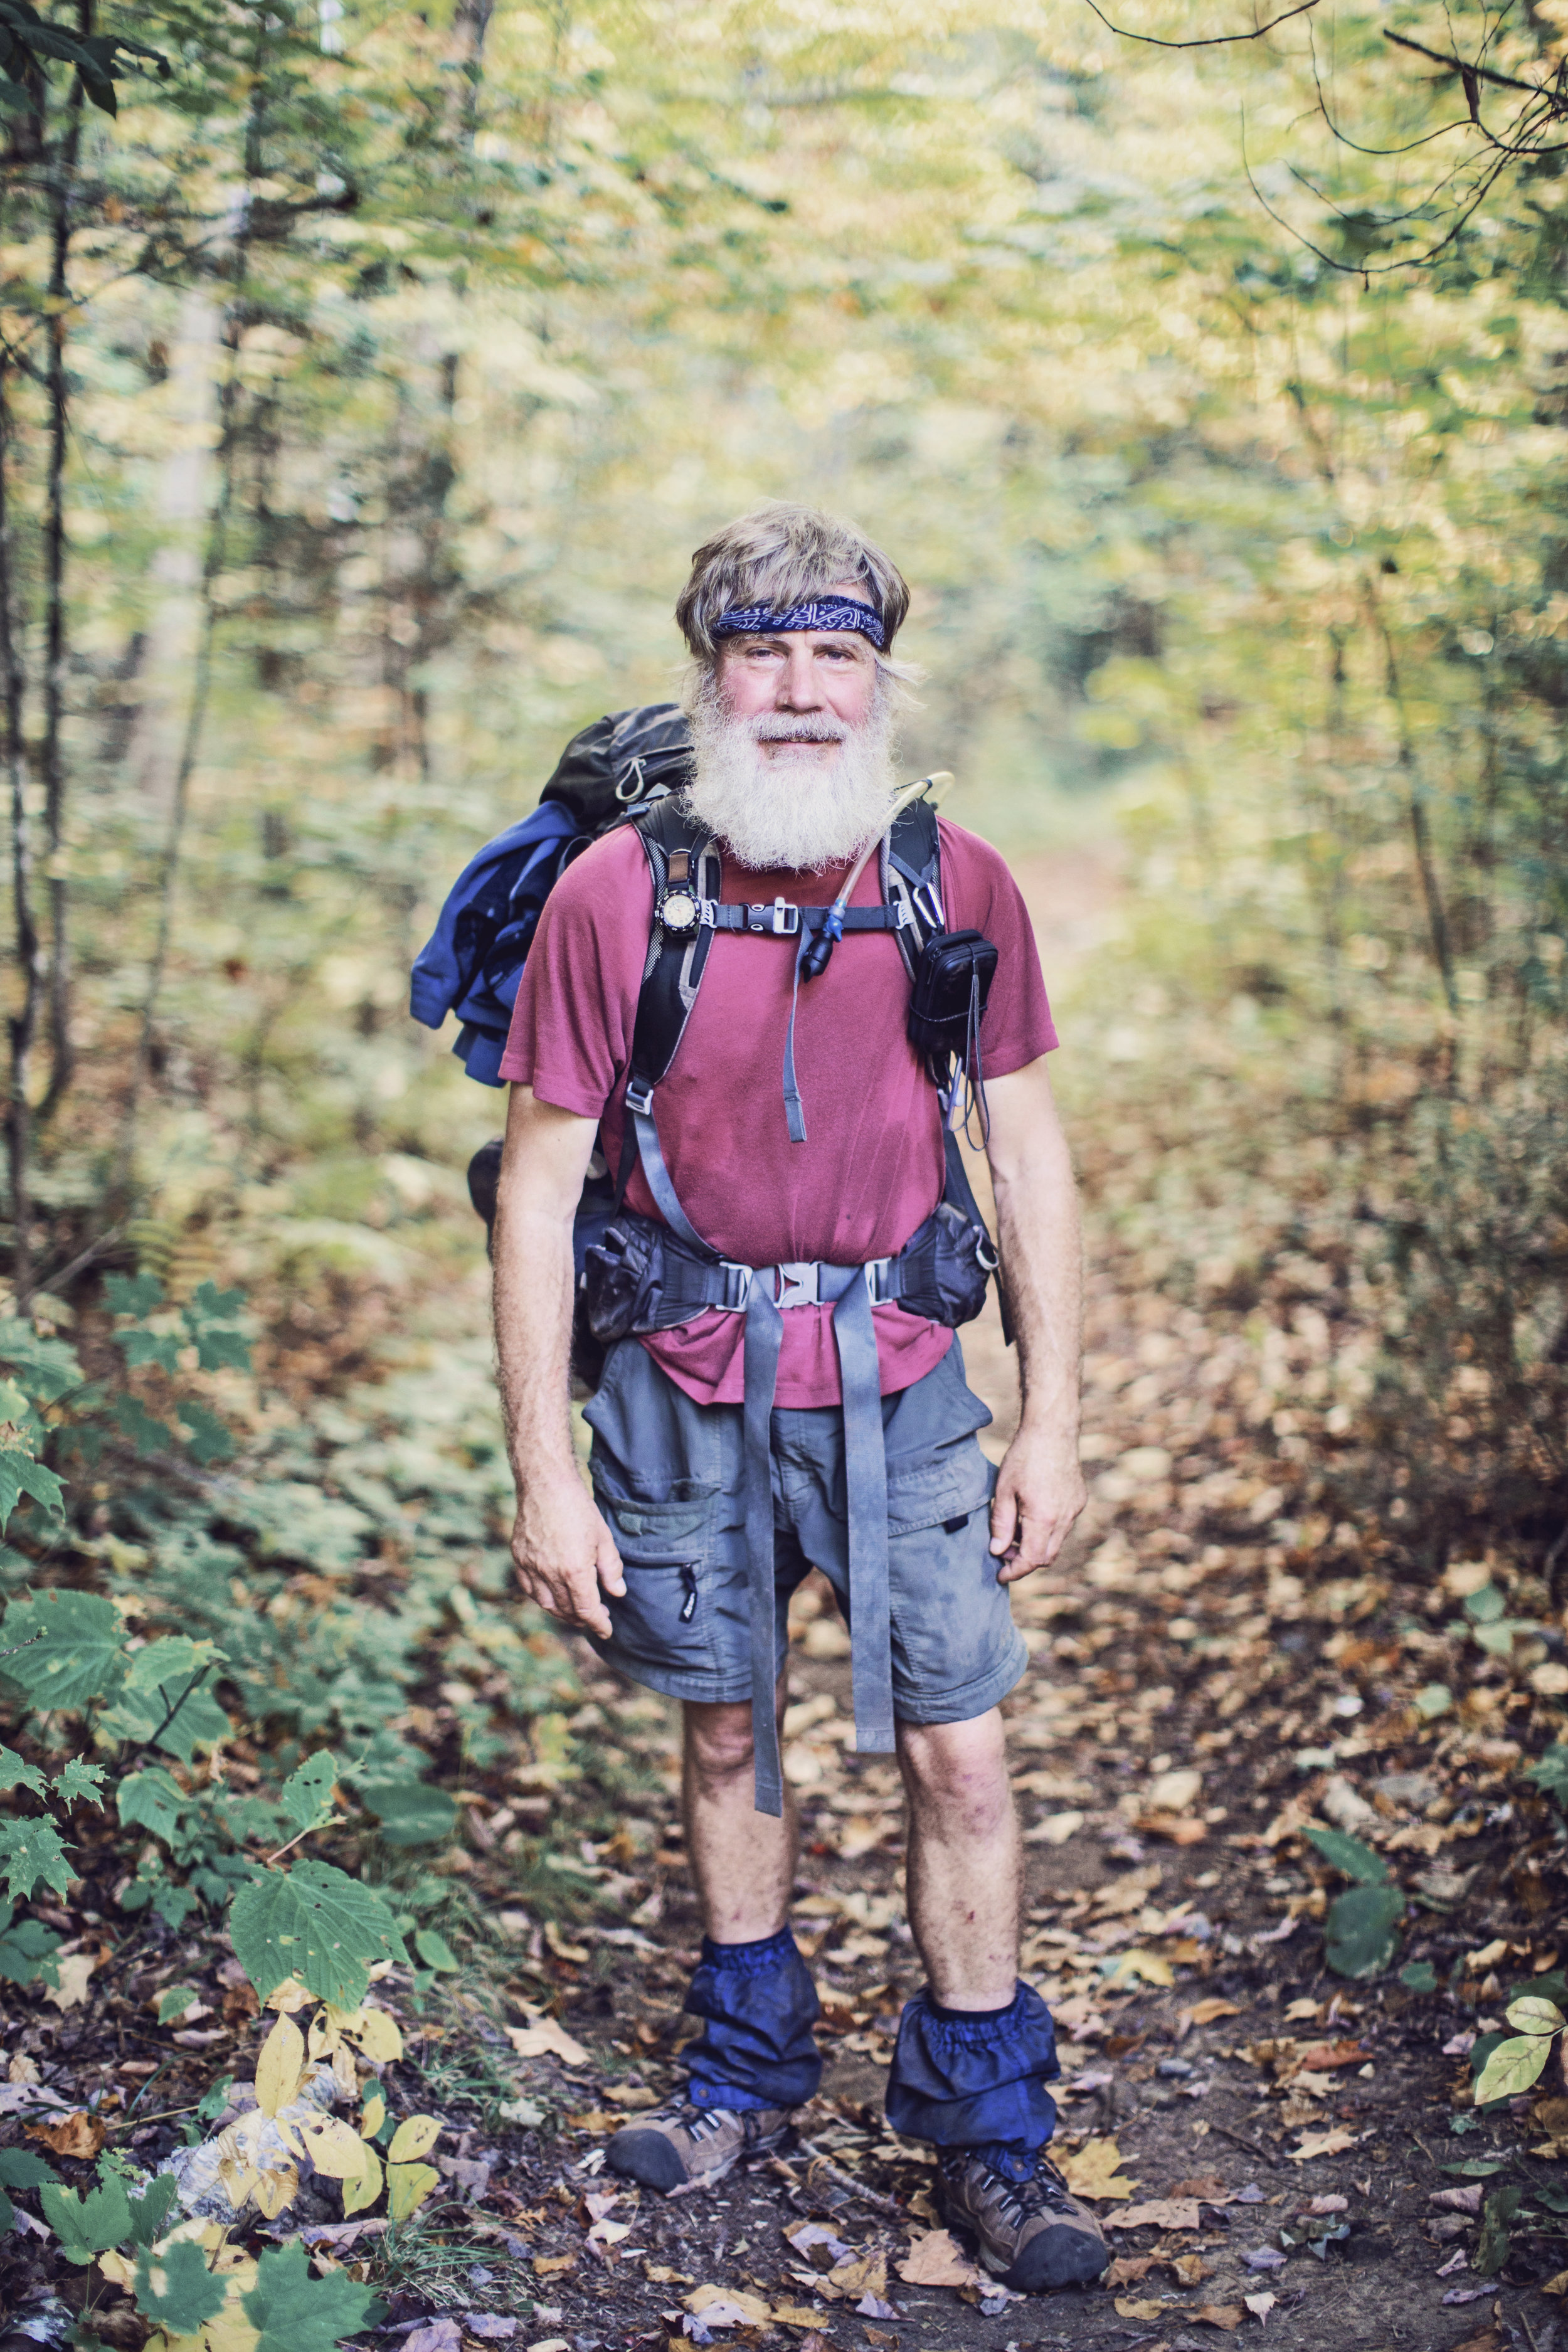 """Papa Bean"" has a simple story about his time on the trail. He tells me in his his lyrical, soft spoken voice ""my daughter called me up one day and asked if I wanted to hike the trail. It took me two seconds to say yes."""